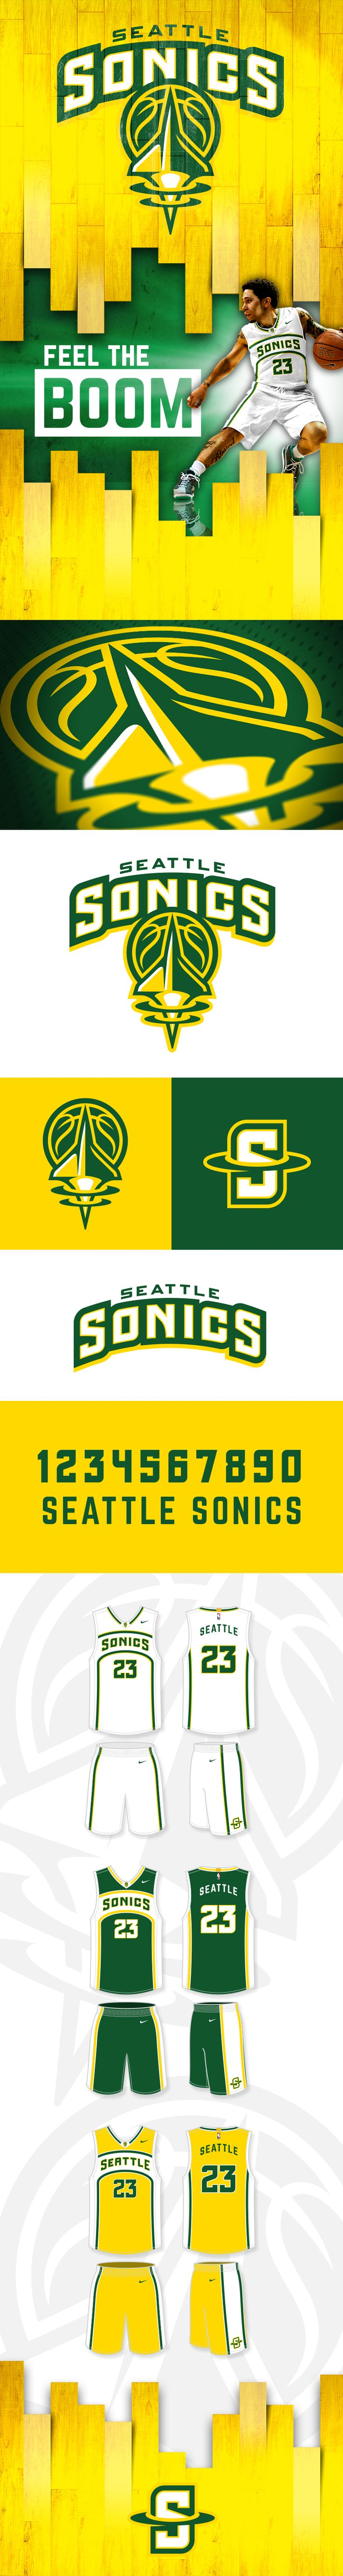 Seattle Sonics Identity Concept on Behance